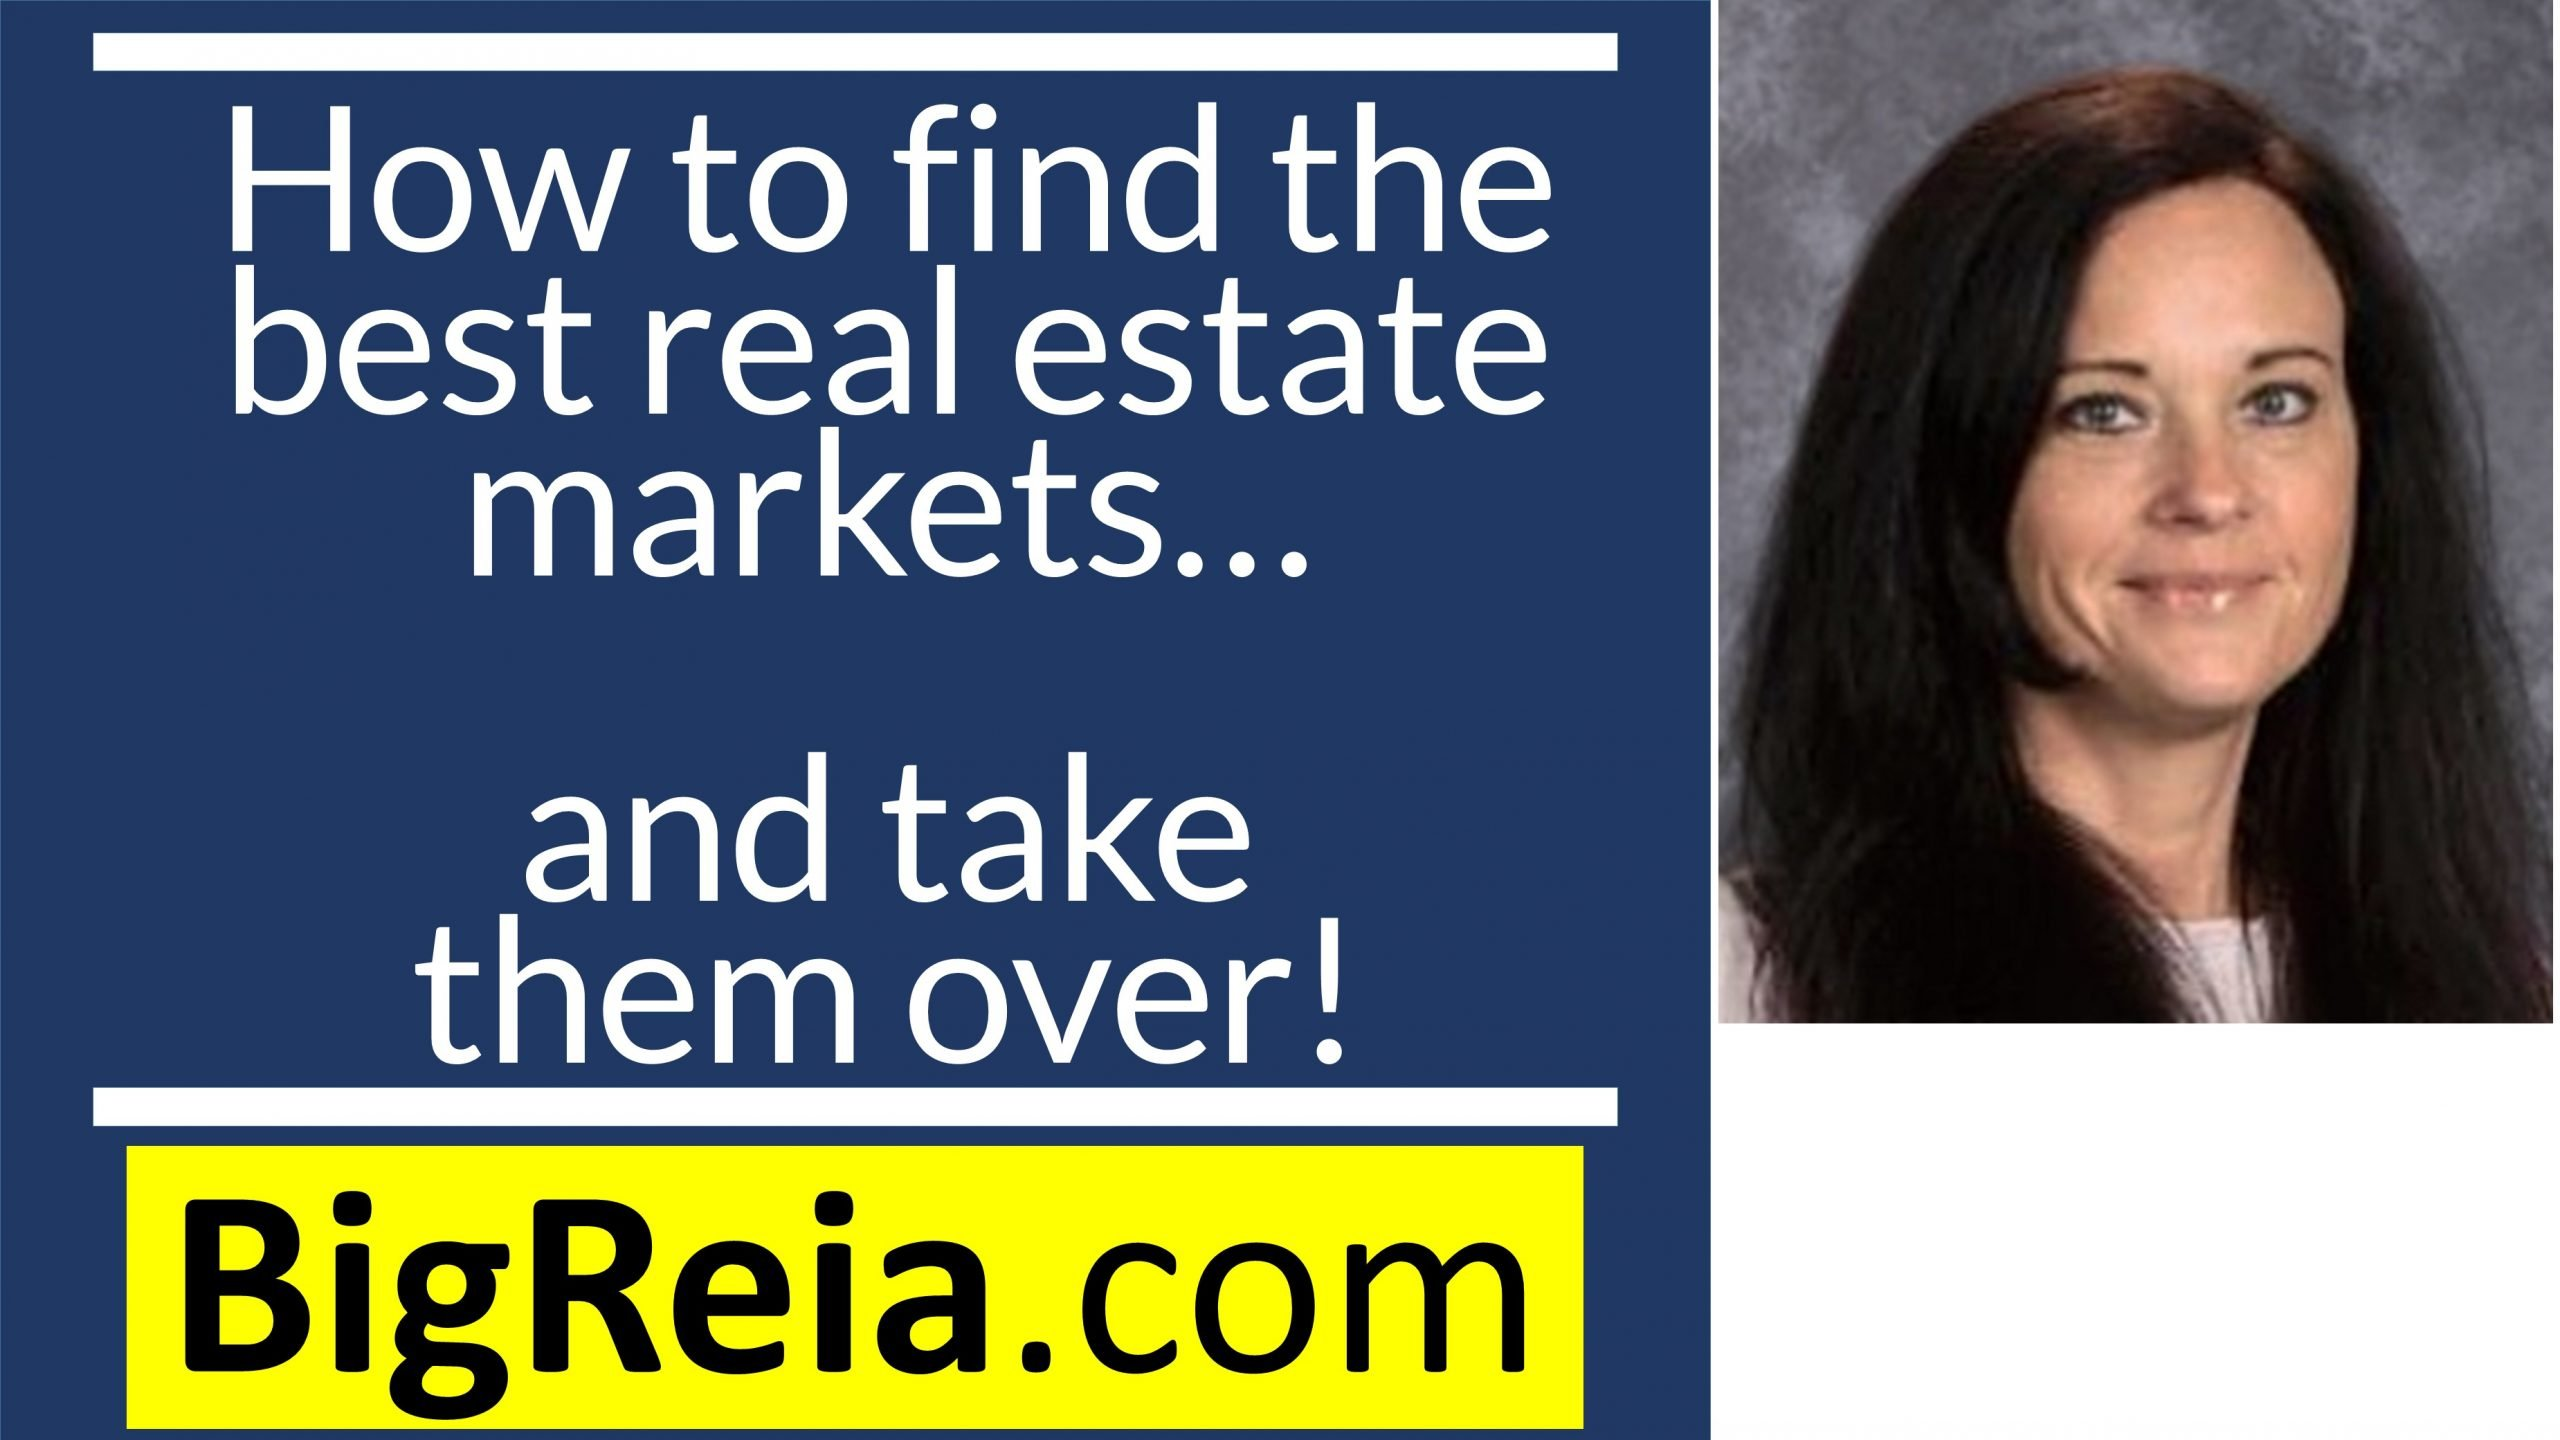 Best real estate markets BigReia